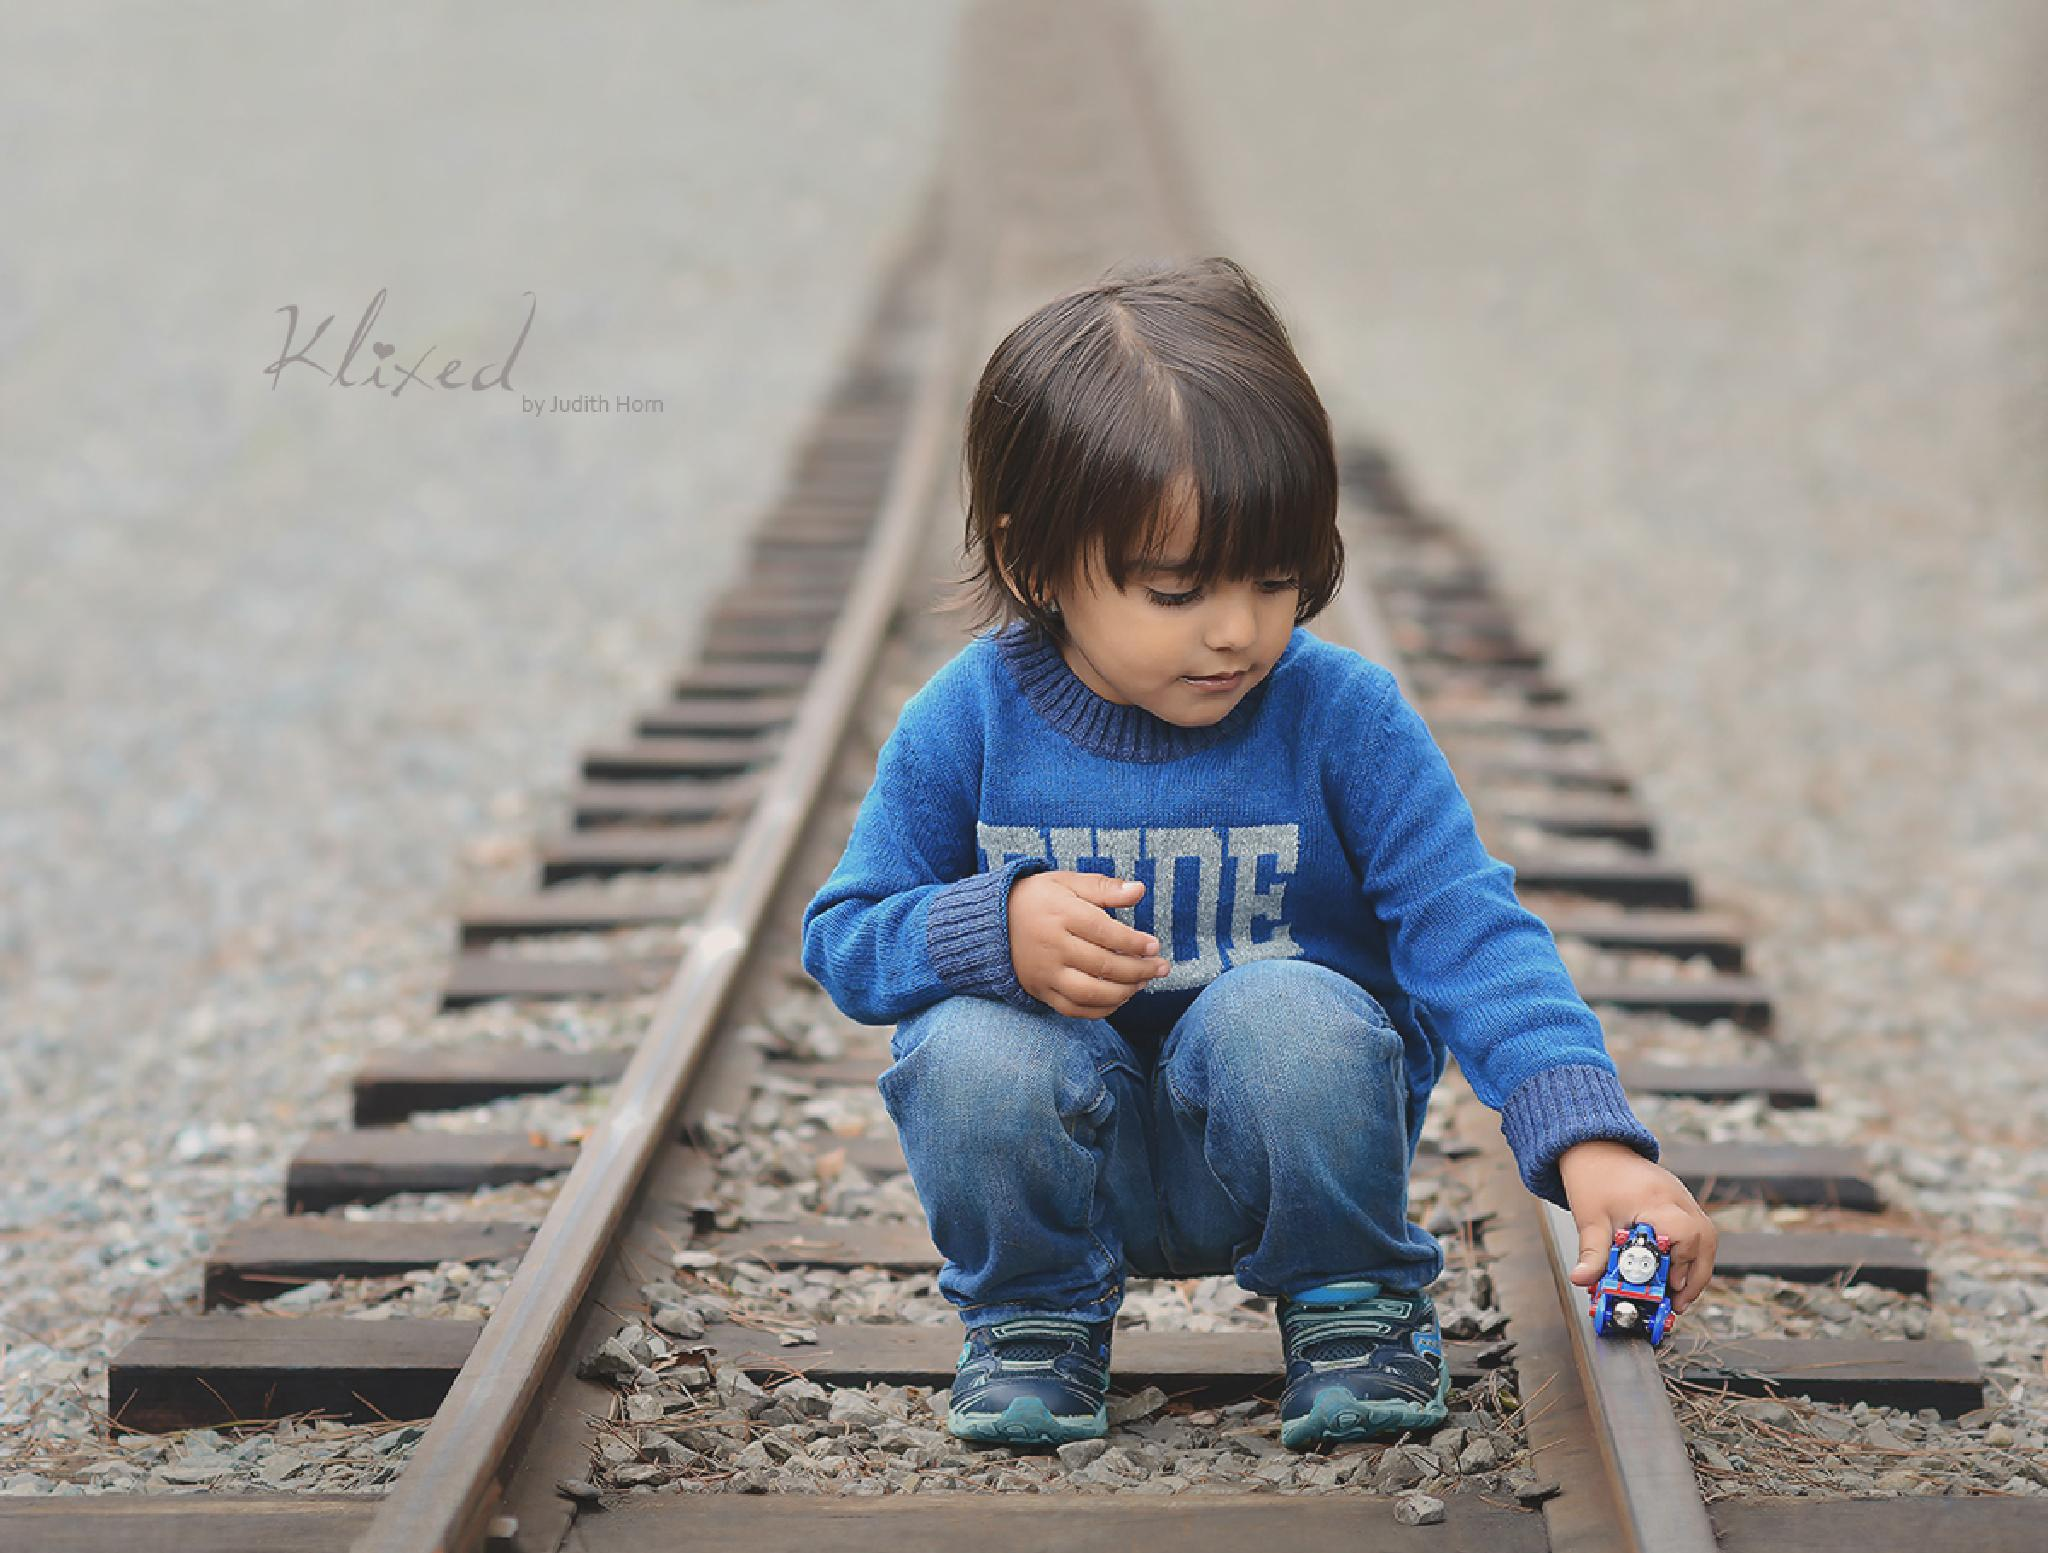 His Love remains - TRAINS! by Klixed by Judith Horn